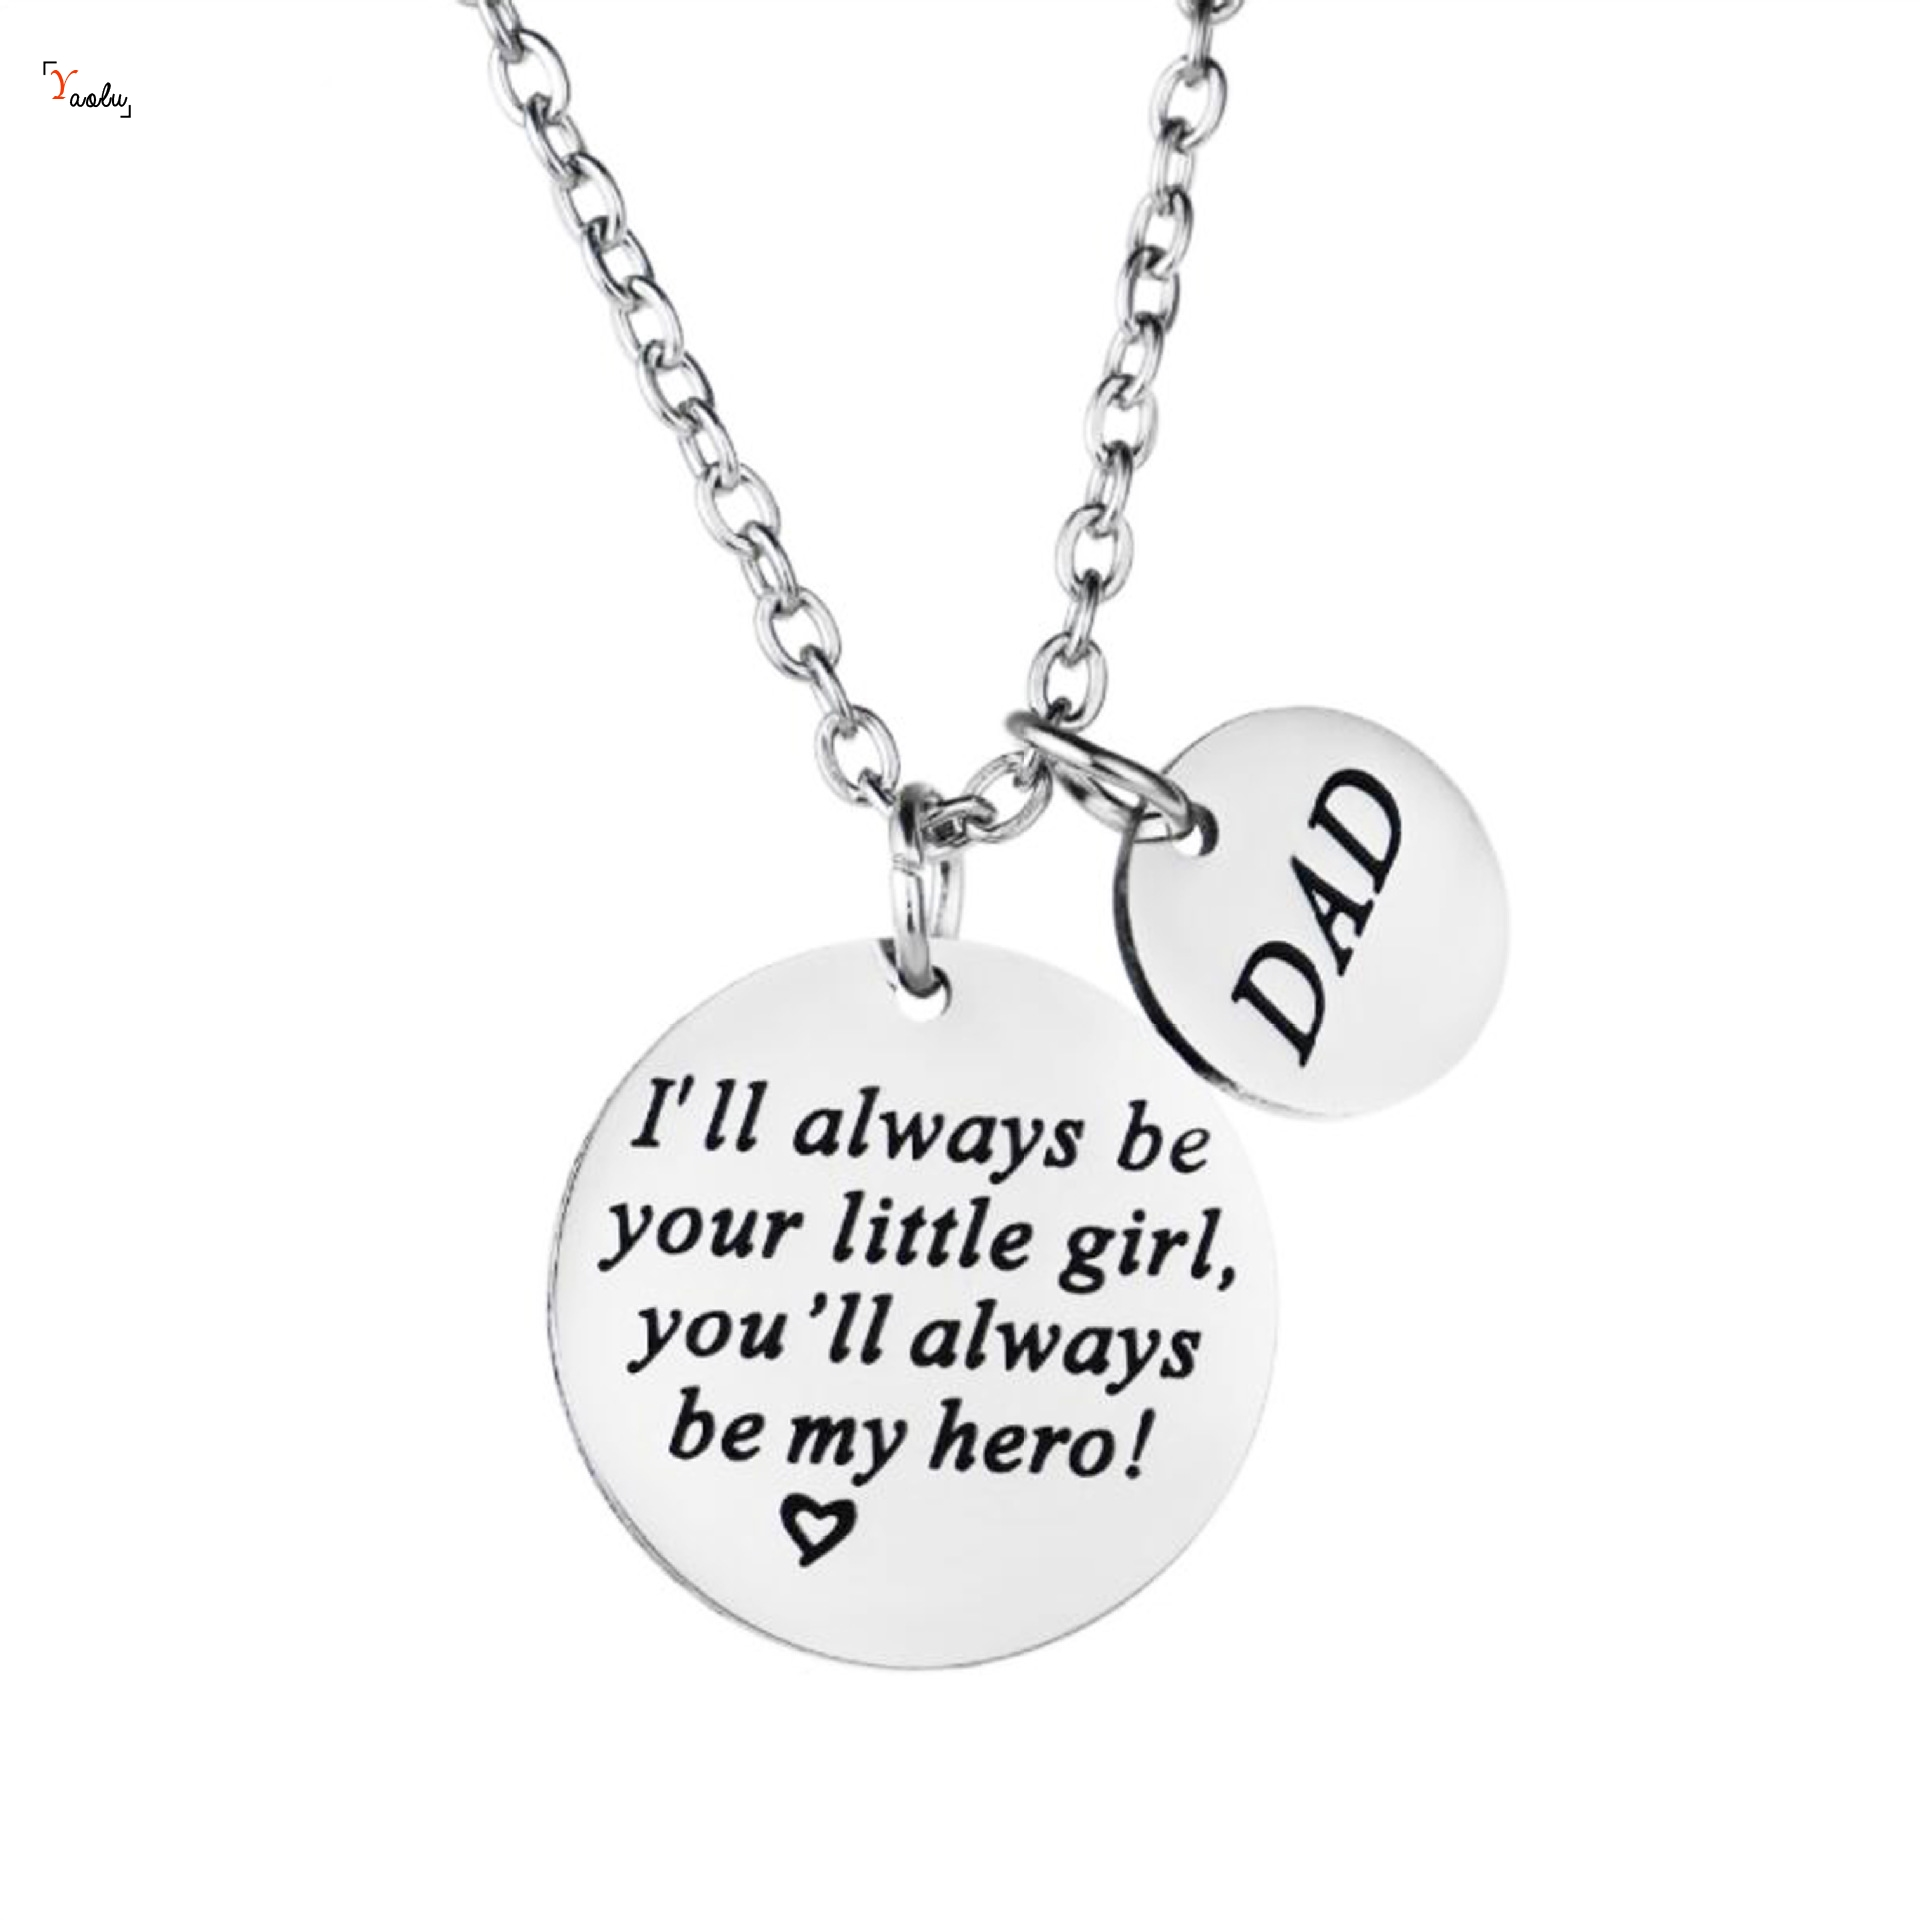 Dad necklace ll aways be your little girl pendant my dad my hero best DAD necklace keyring father's day gift image